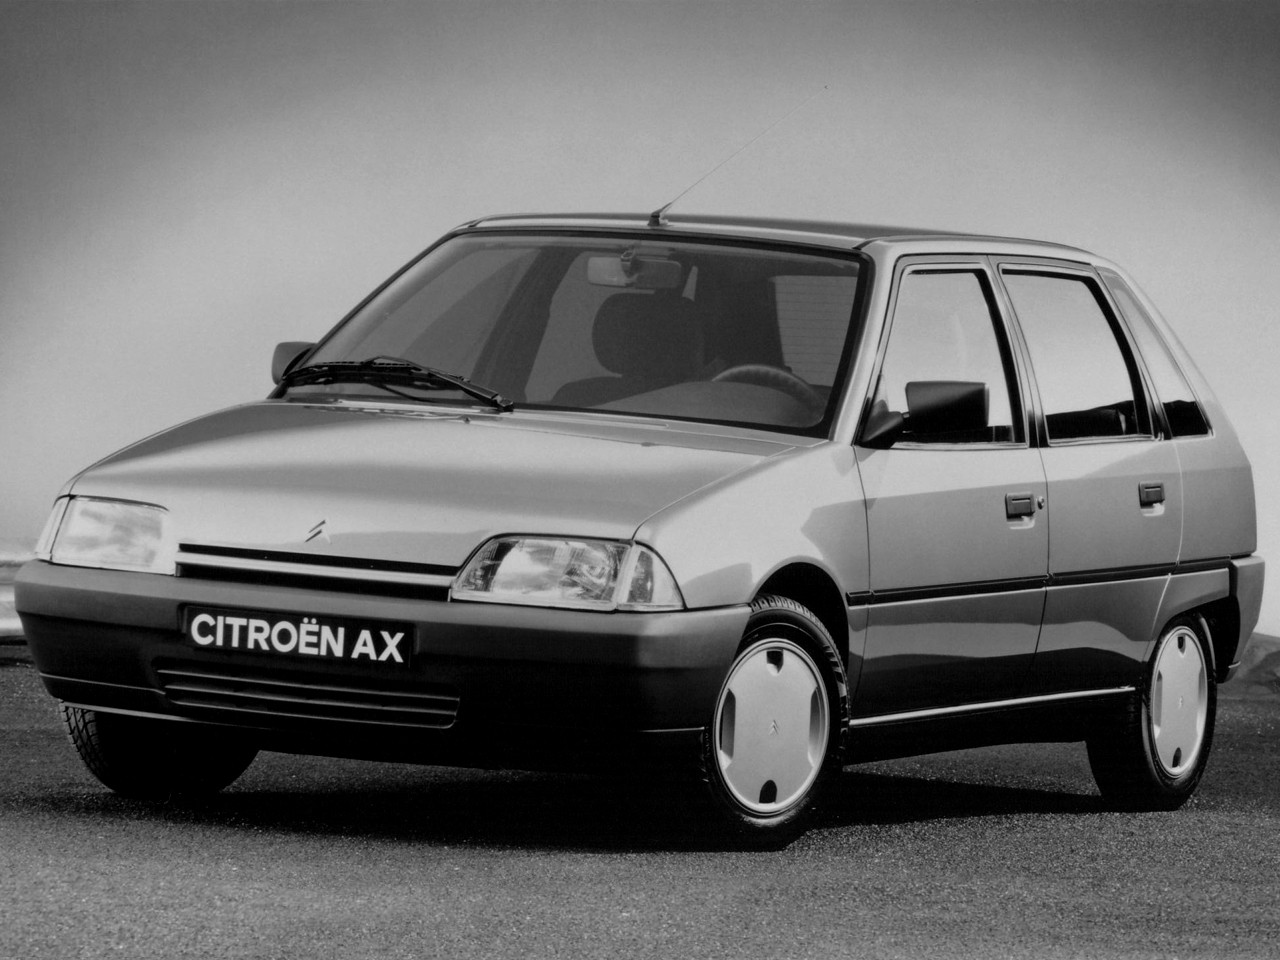 citroen ax 5 doors 1991 1992 1993 1994 1995 1996 1997 1998 autoevolution. Black Bedroom Furniture Sets. Home Design Ideas